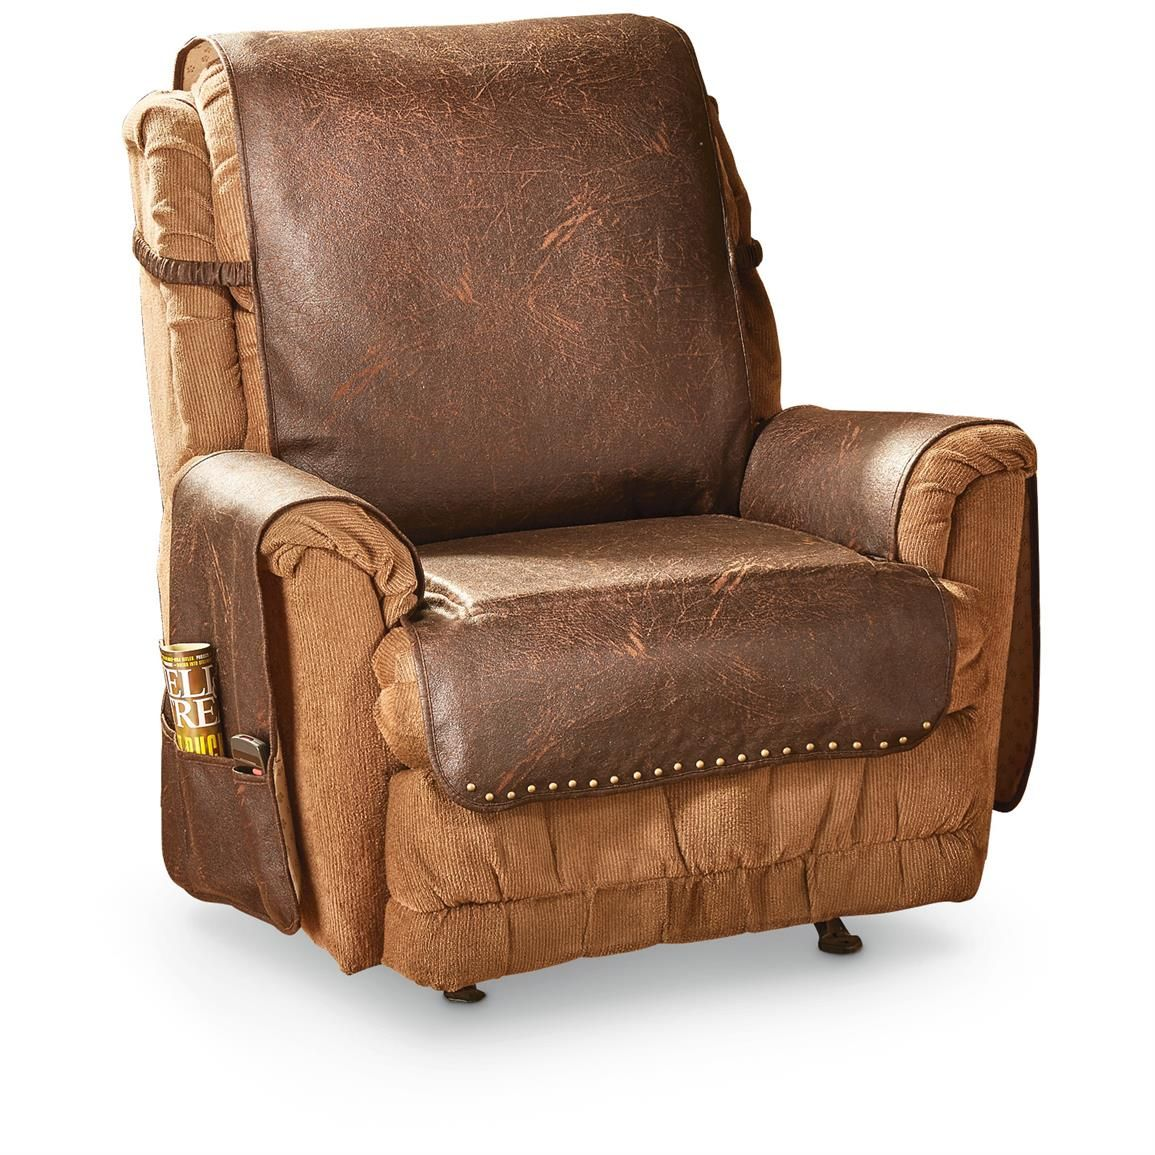 Faux Leather Recliner Cover Recliner Cover Arm Chair Covers Luxury Chair Covers